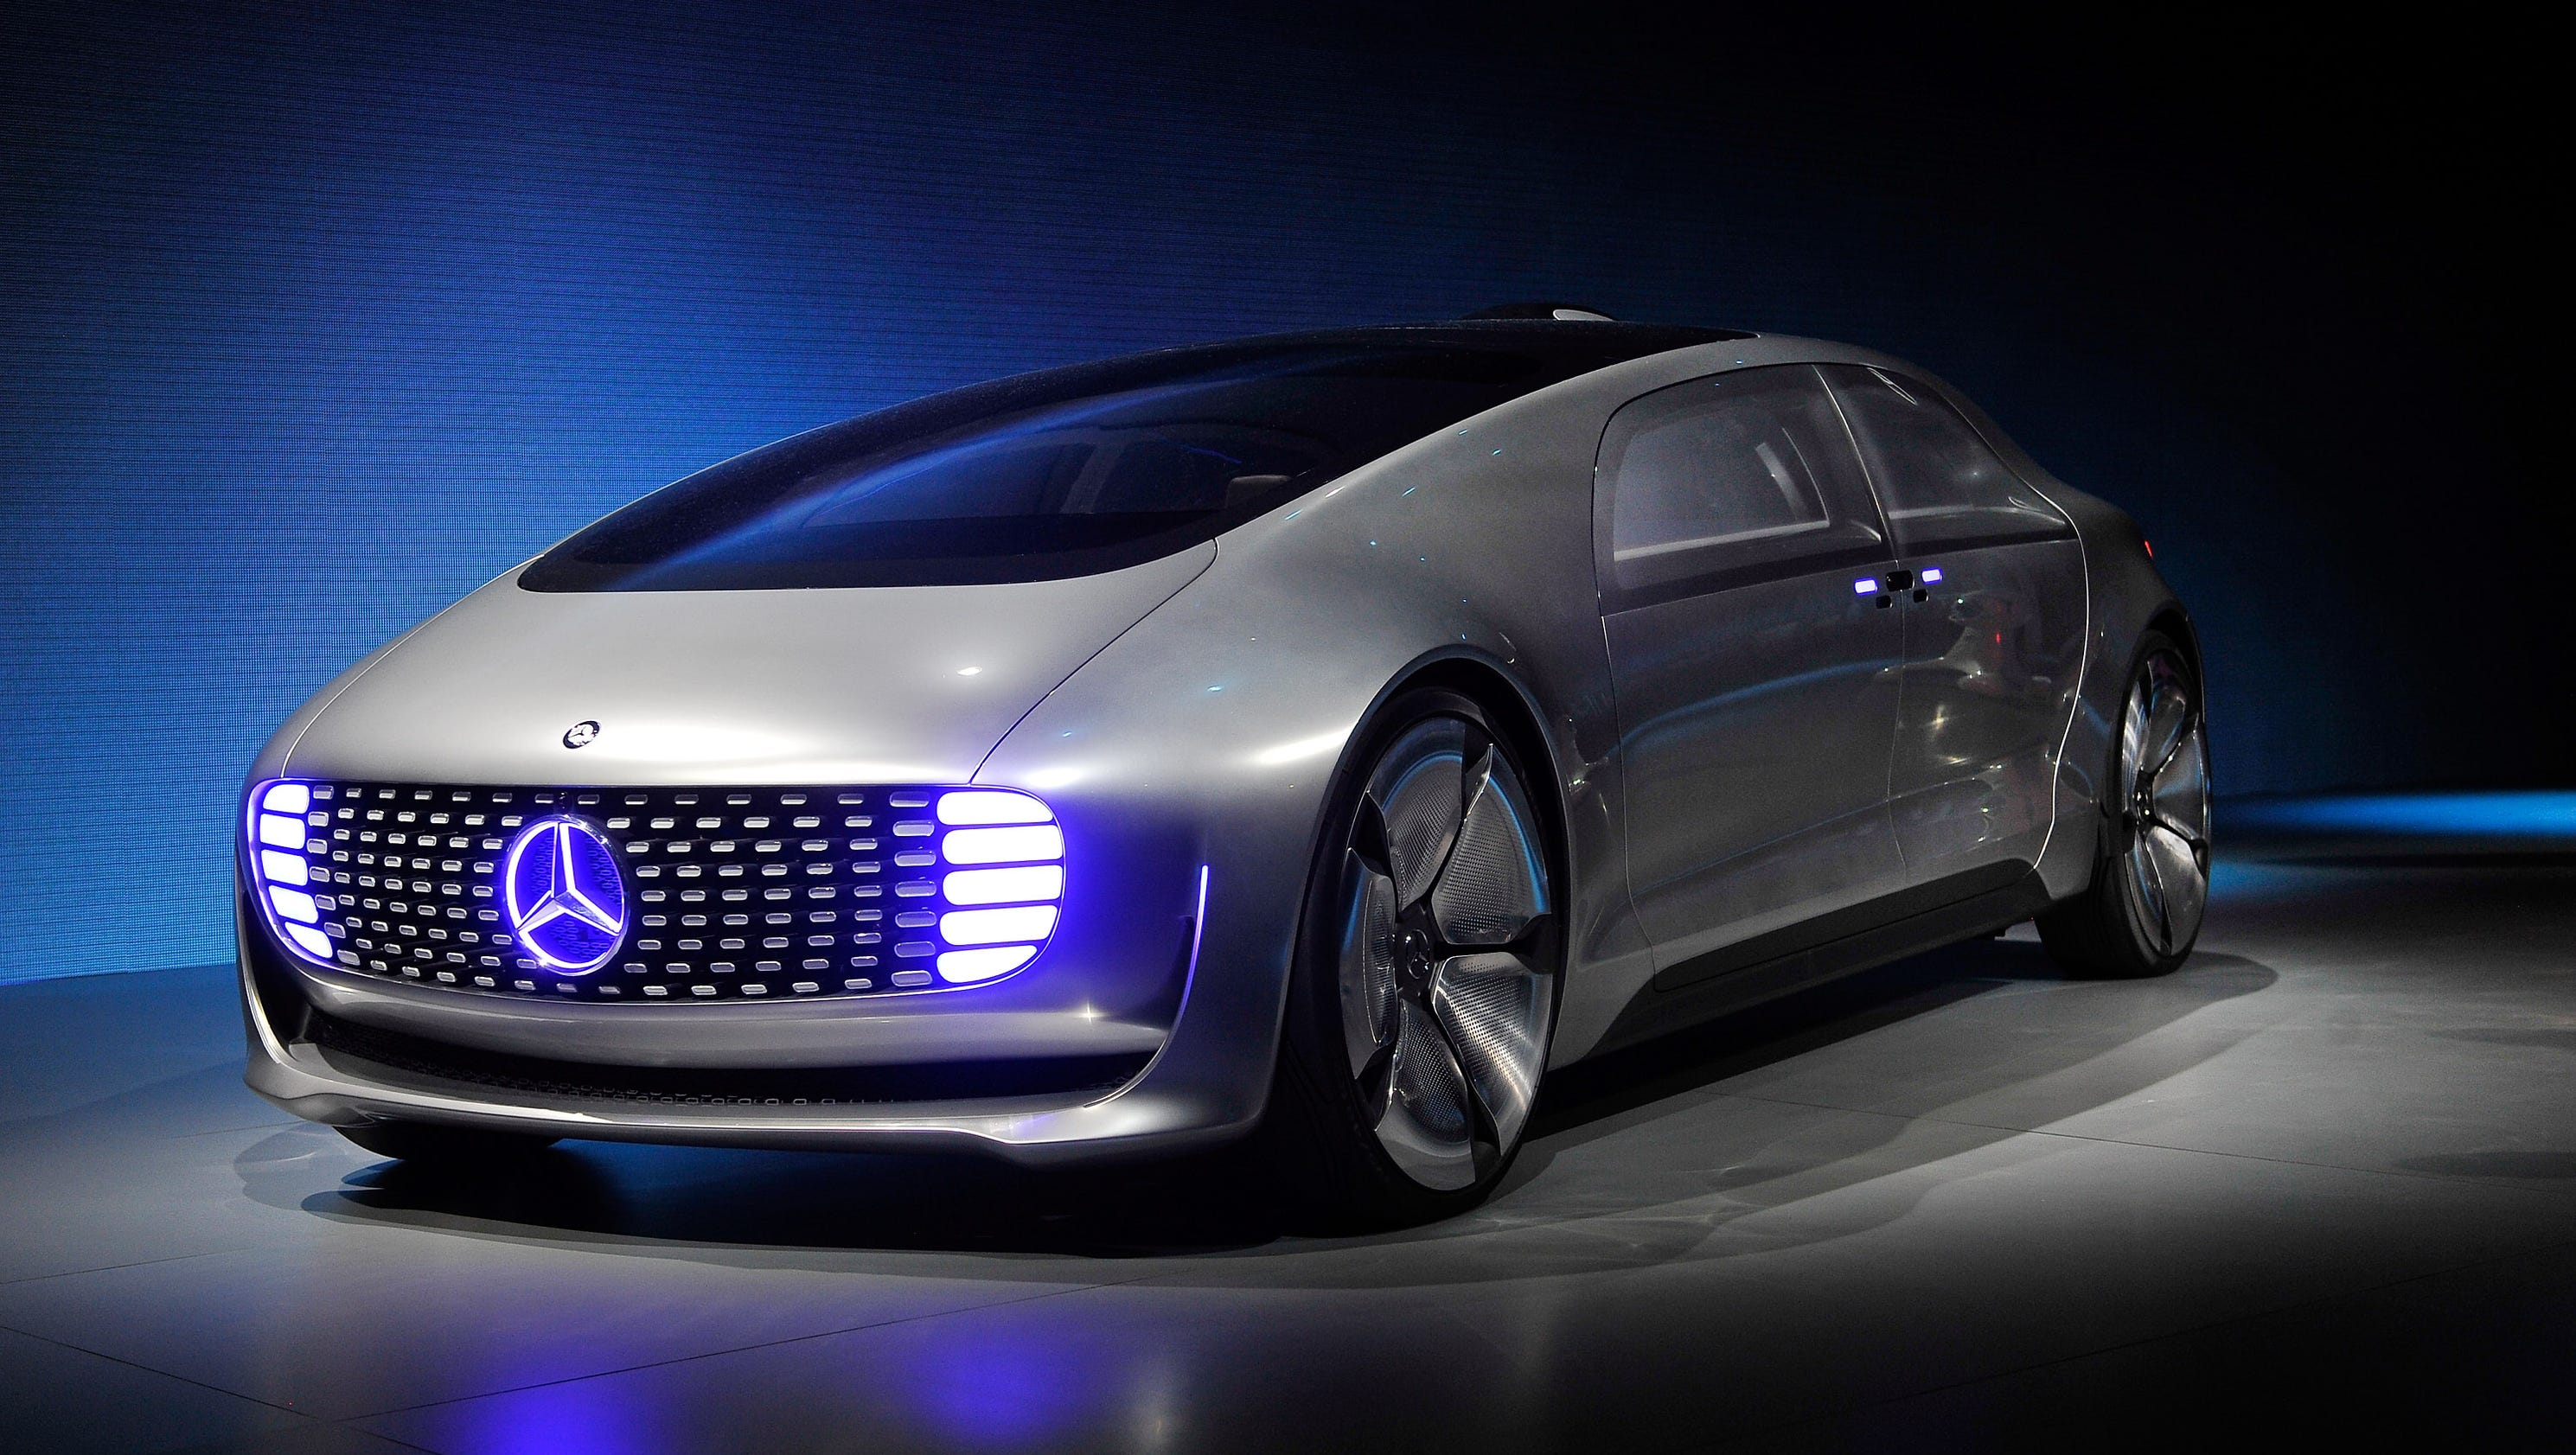 Mercedes Benz Las Vegas >> Mercedes-Benz unveils futuristic car at CES